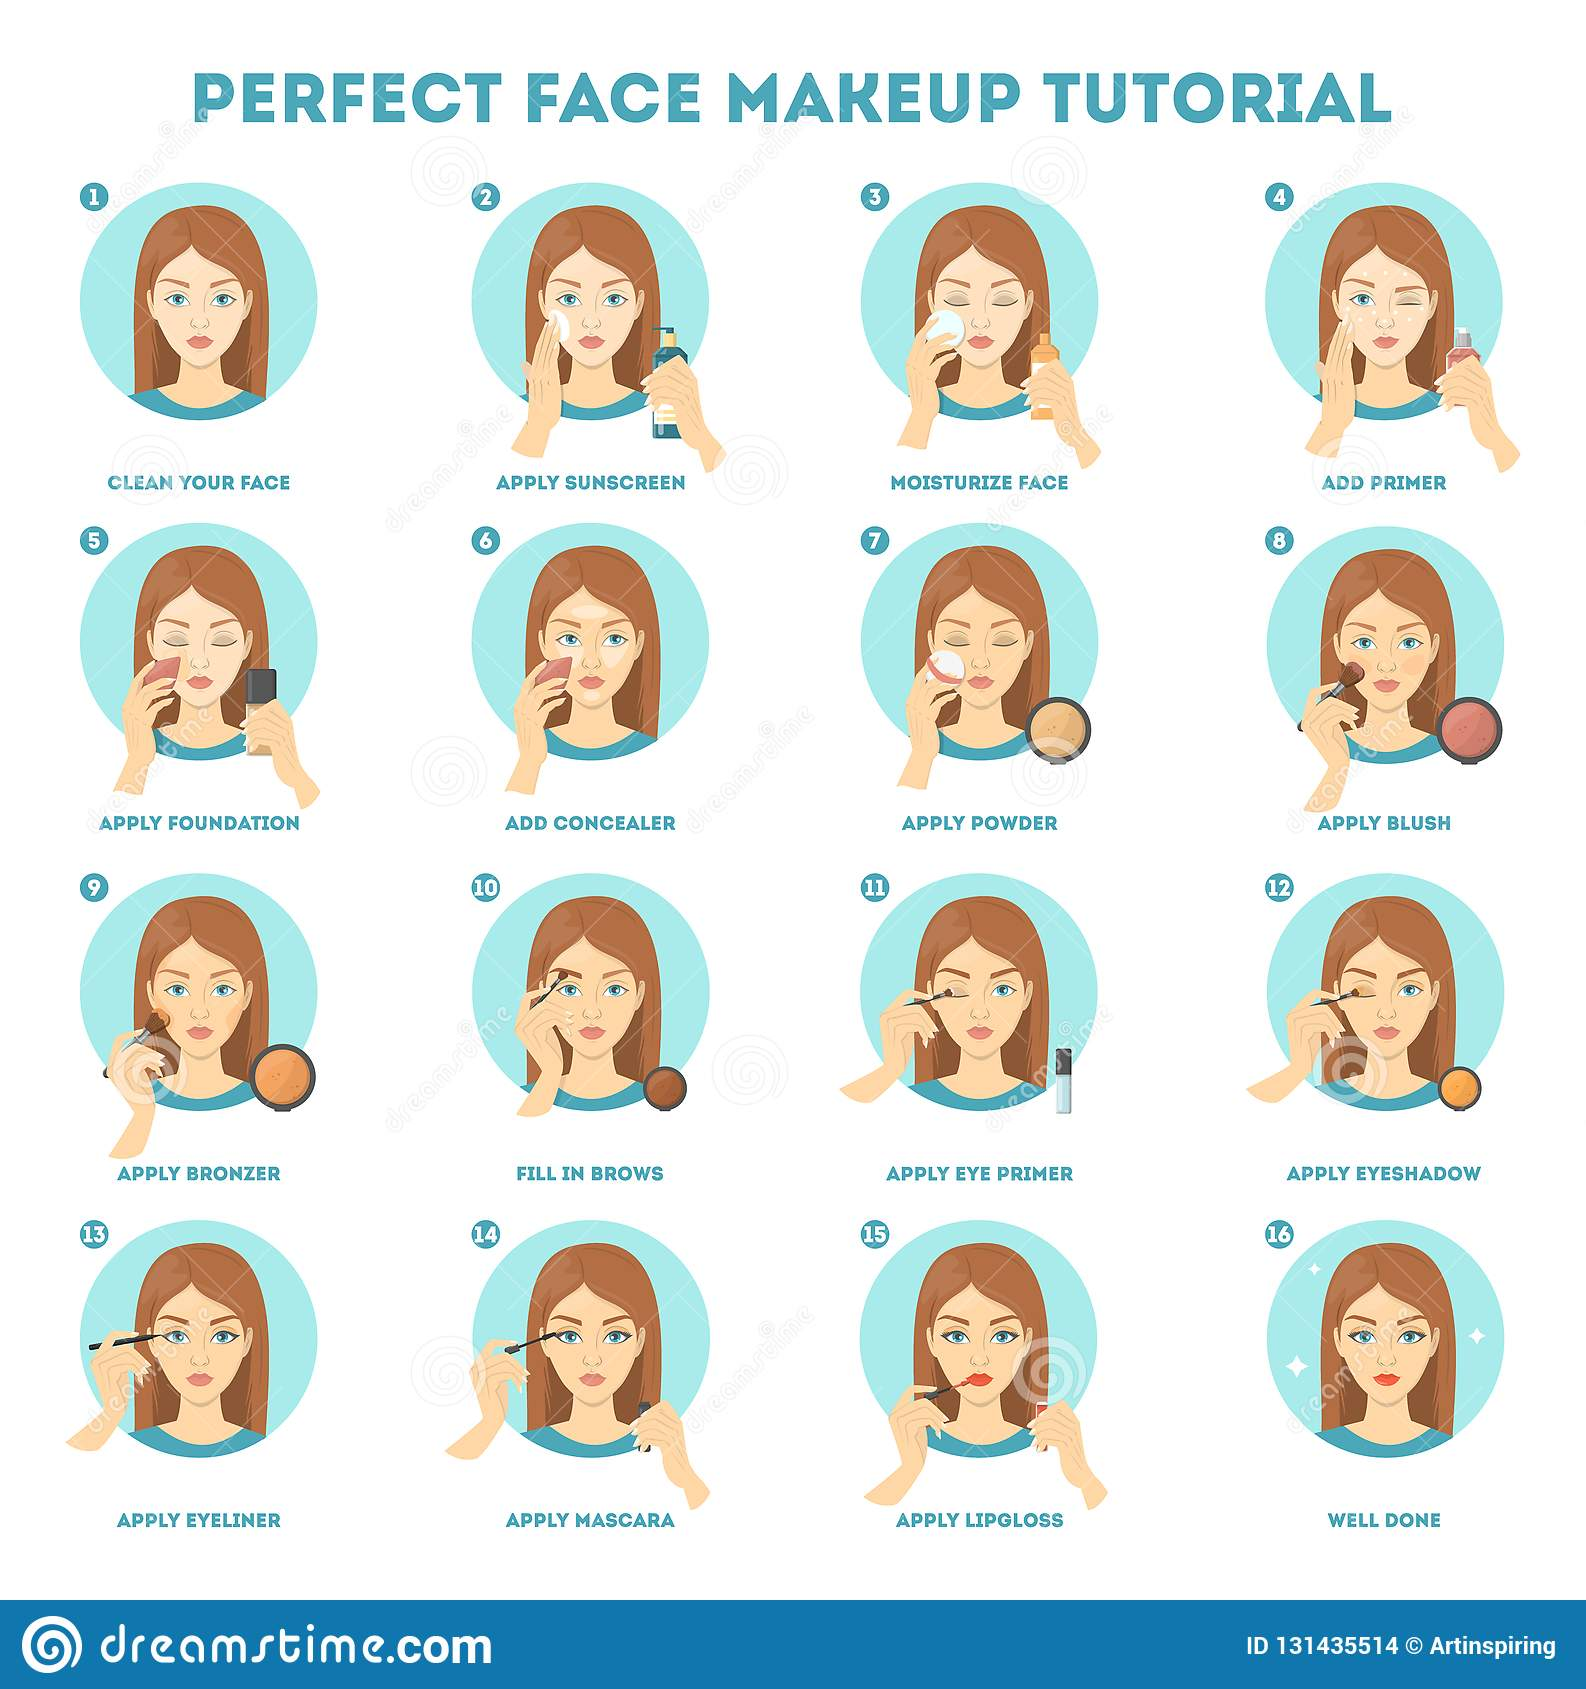 Face Makeup Tutorial For Woman Applying Powder Stock Vector Illustration Of Base Isolated 131435514